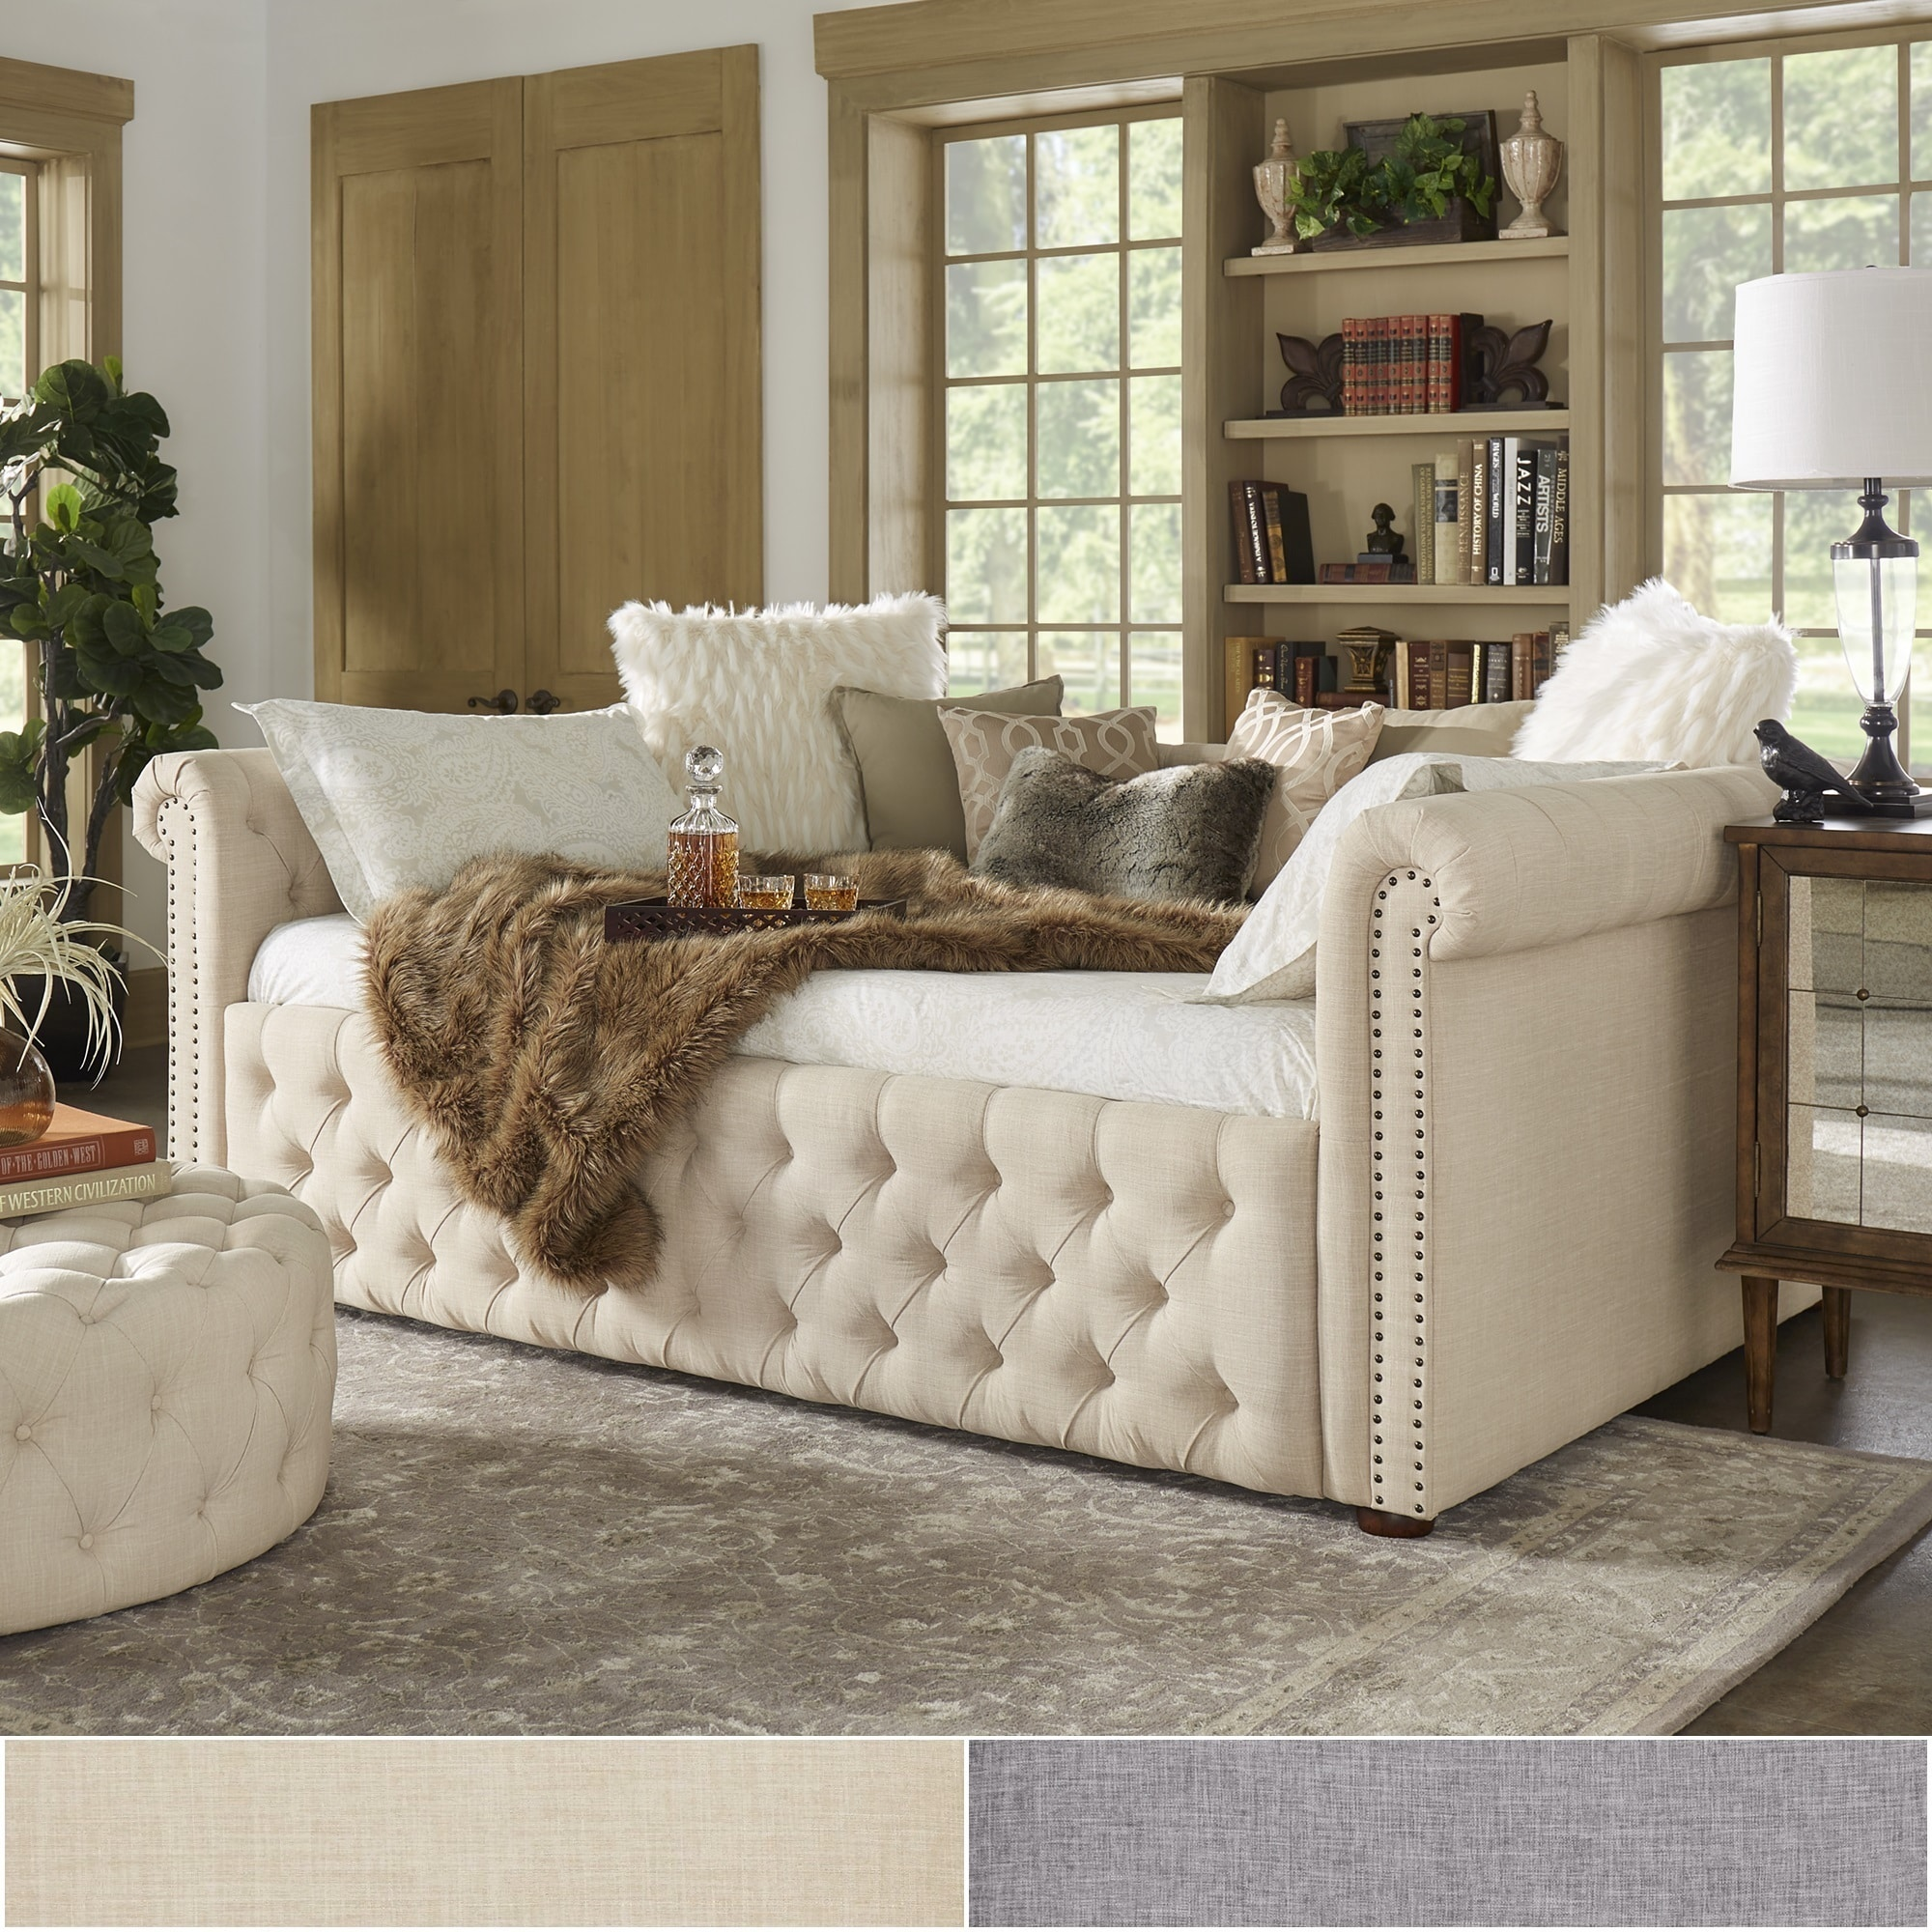 - Shop Knightsbridge Full Size Tufted Scroll Arm Chesterfield Daybed